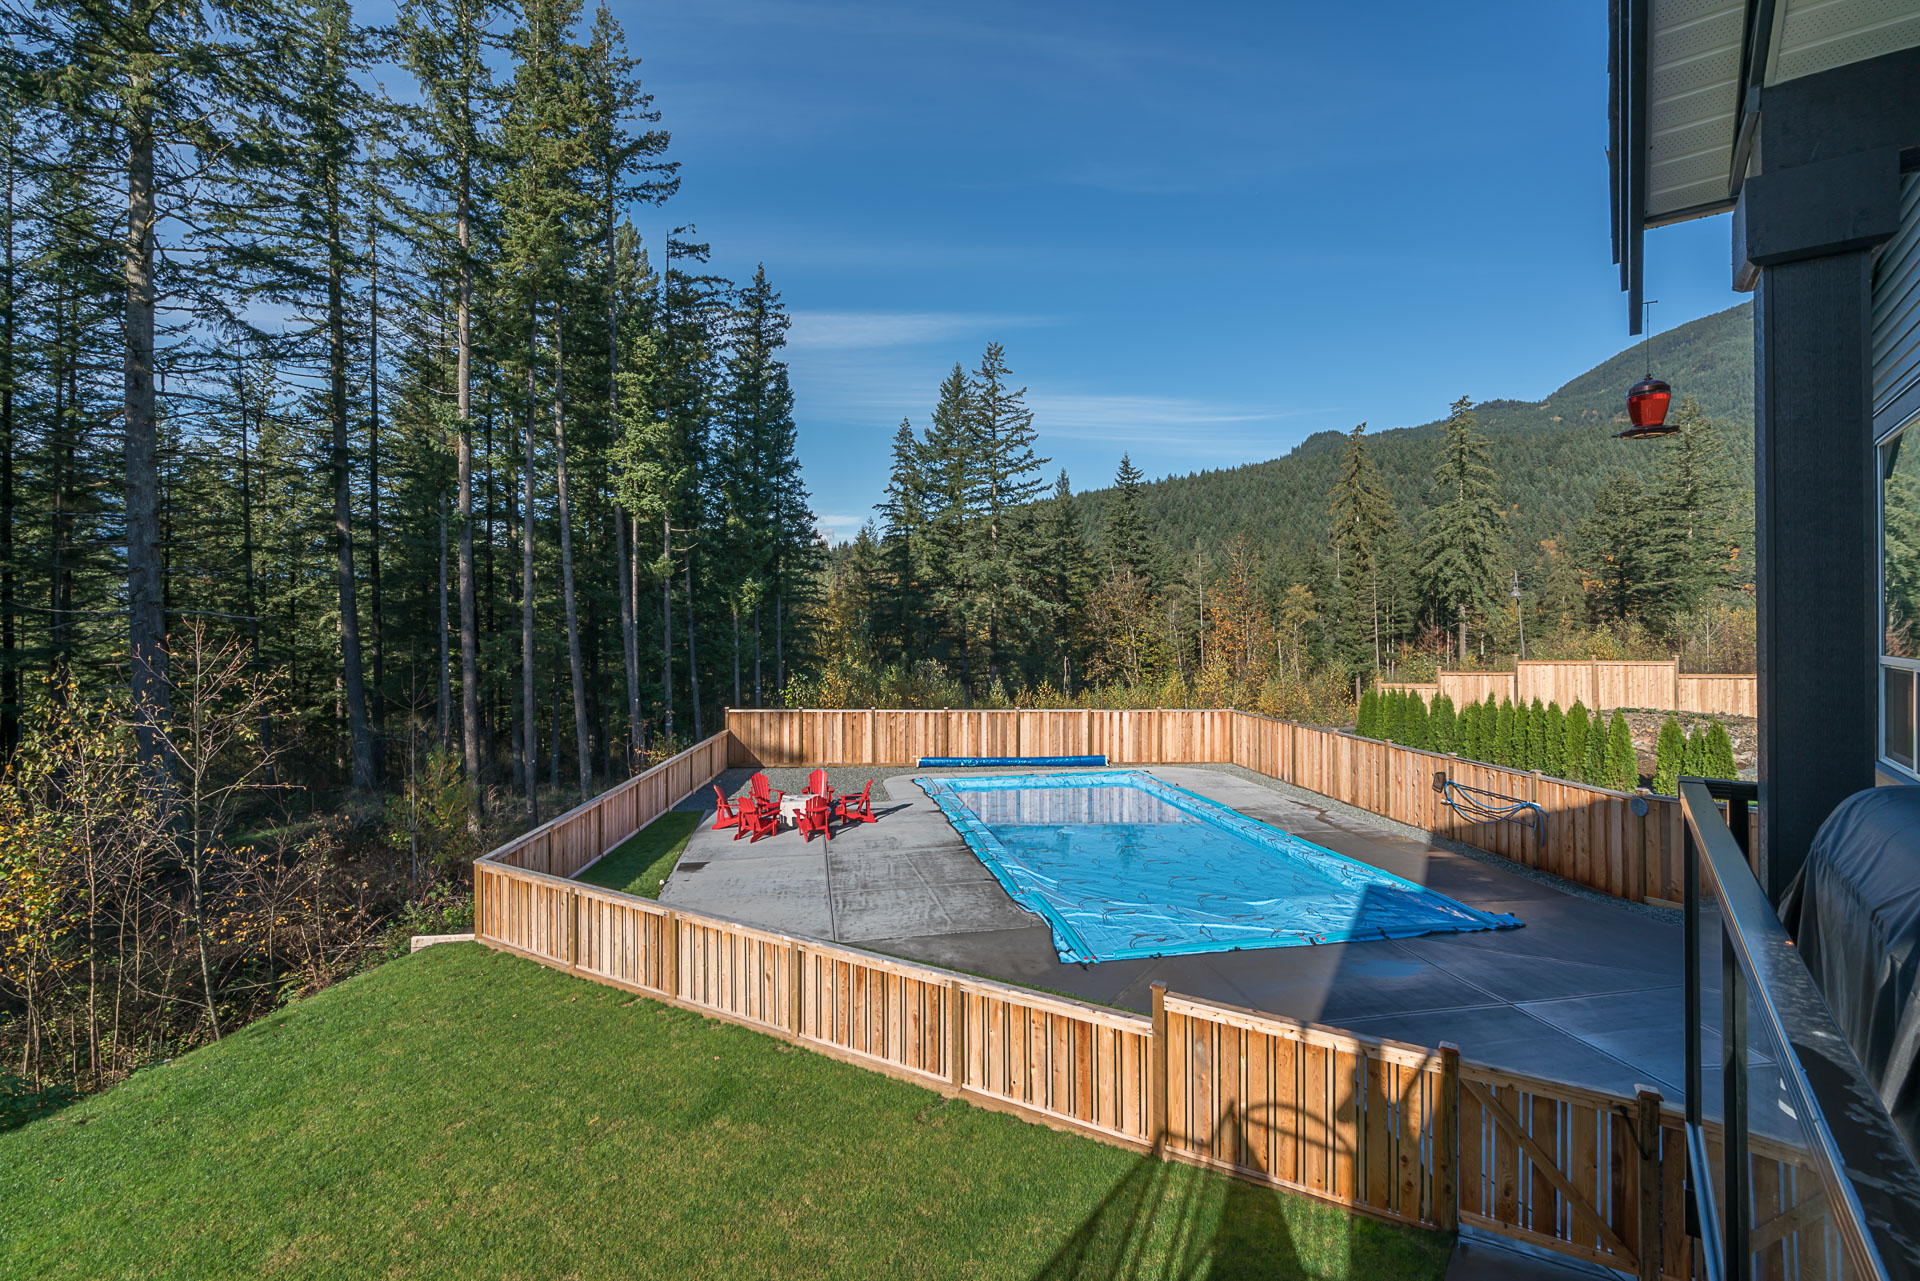 Home_For_Sale_House_Michele_Cummins_Real_Estate_Group_Mission_Agassiz_Mt.Woodside_Pool_Jacuzzi_View_Greenspace_Amazing